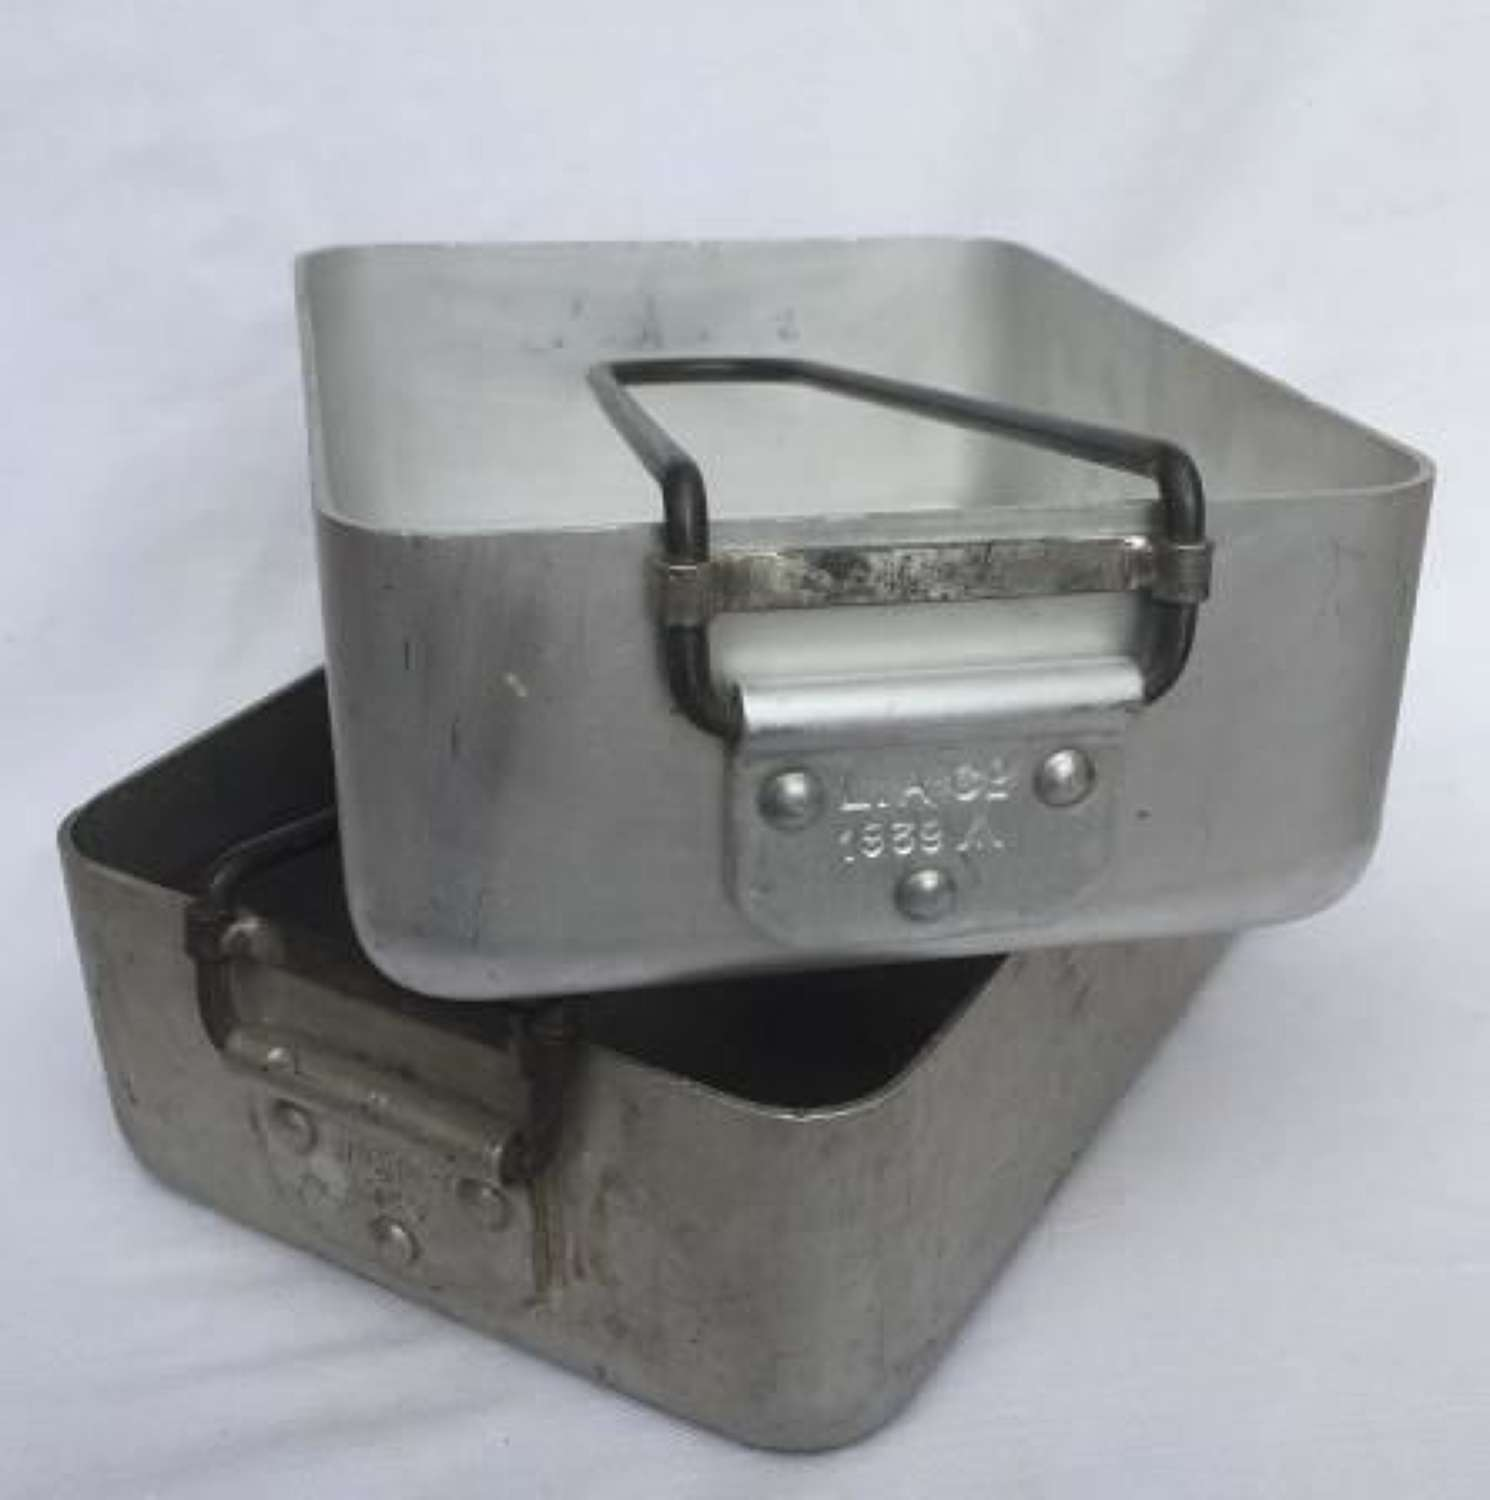 1939 Dated British Army Mess Tins As Used By The BEF